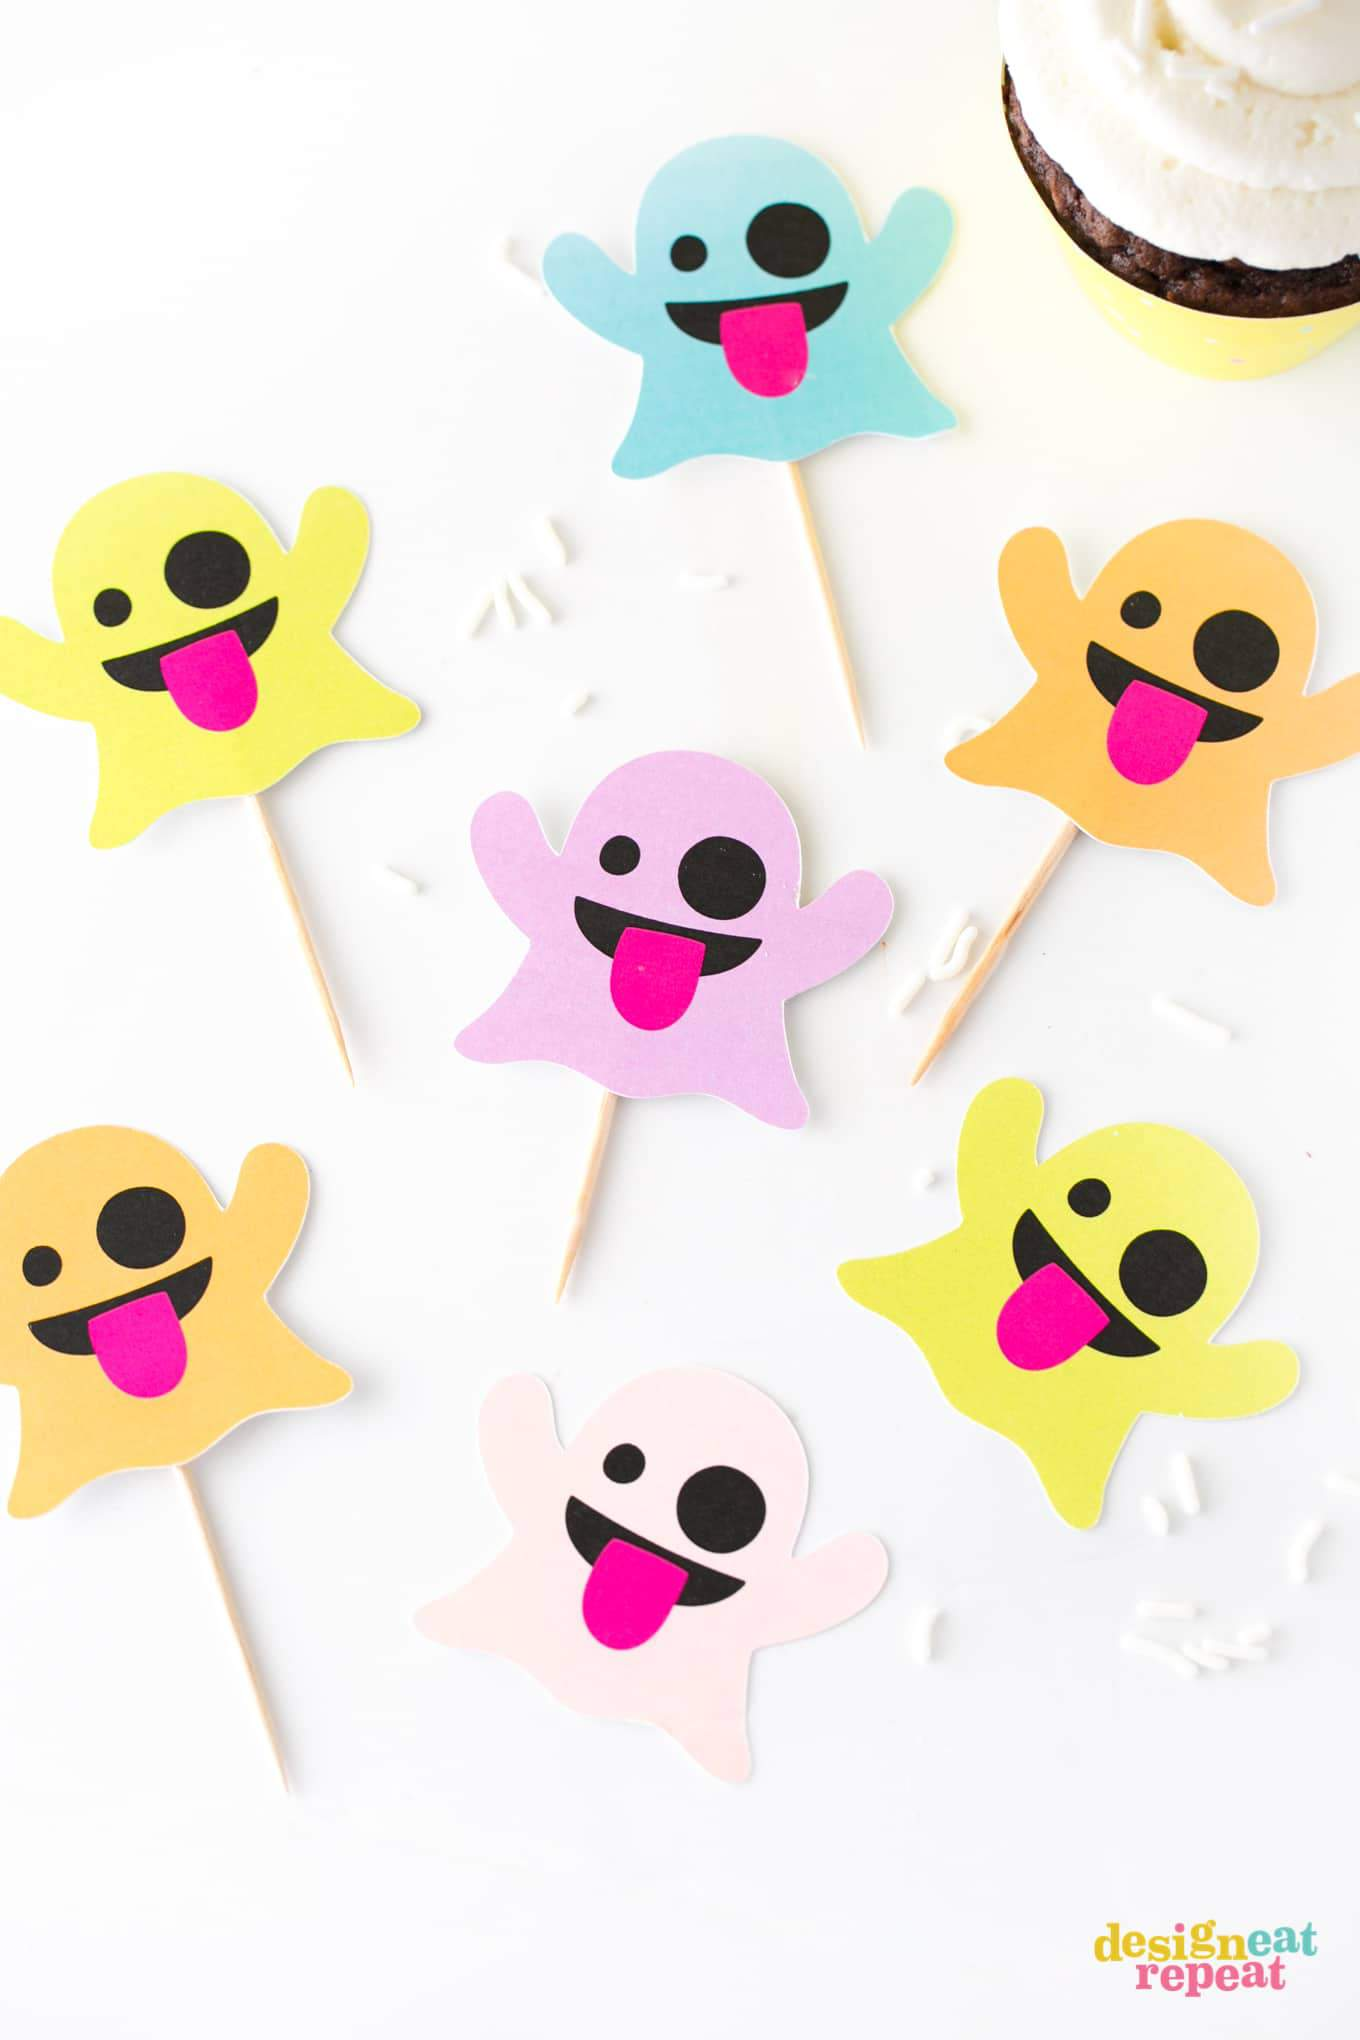 Emoji Ghost Halloween Cupcake Toppers! Free to download and print at www.DesignEatRepeat.com #Halloween #Printable #Cupcake #Emoji